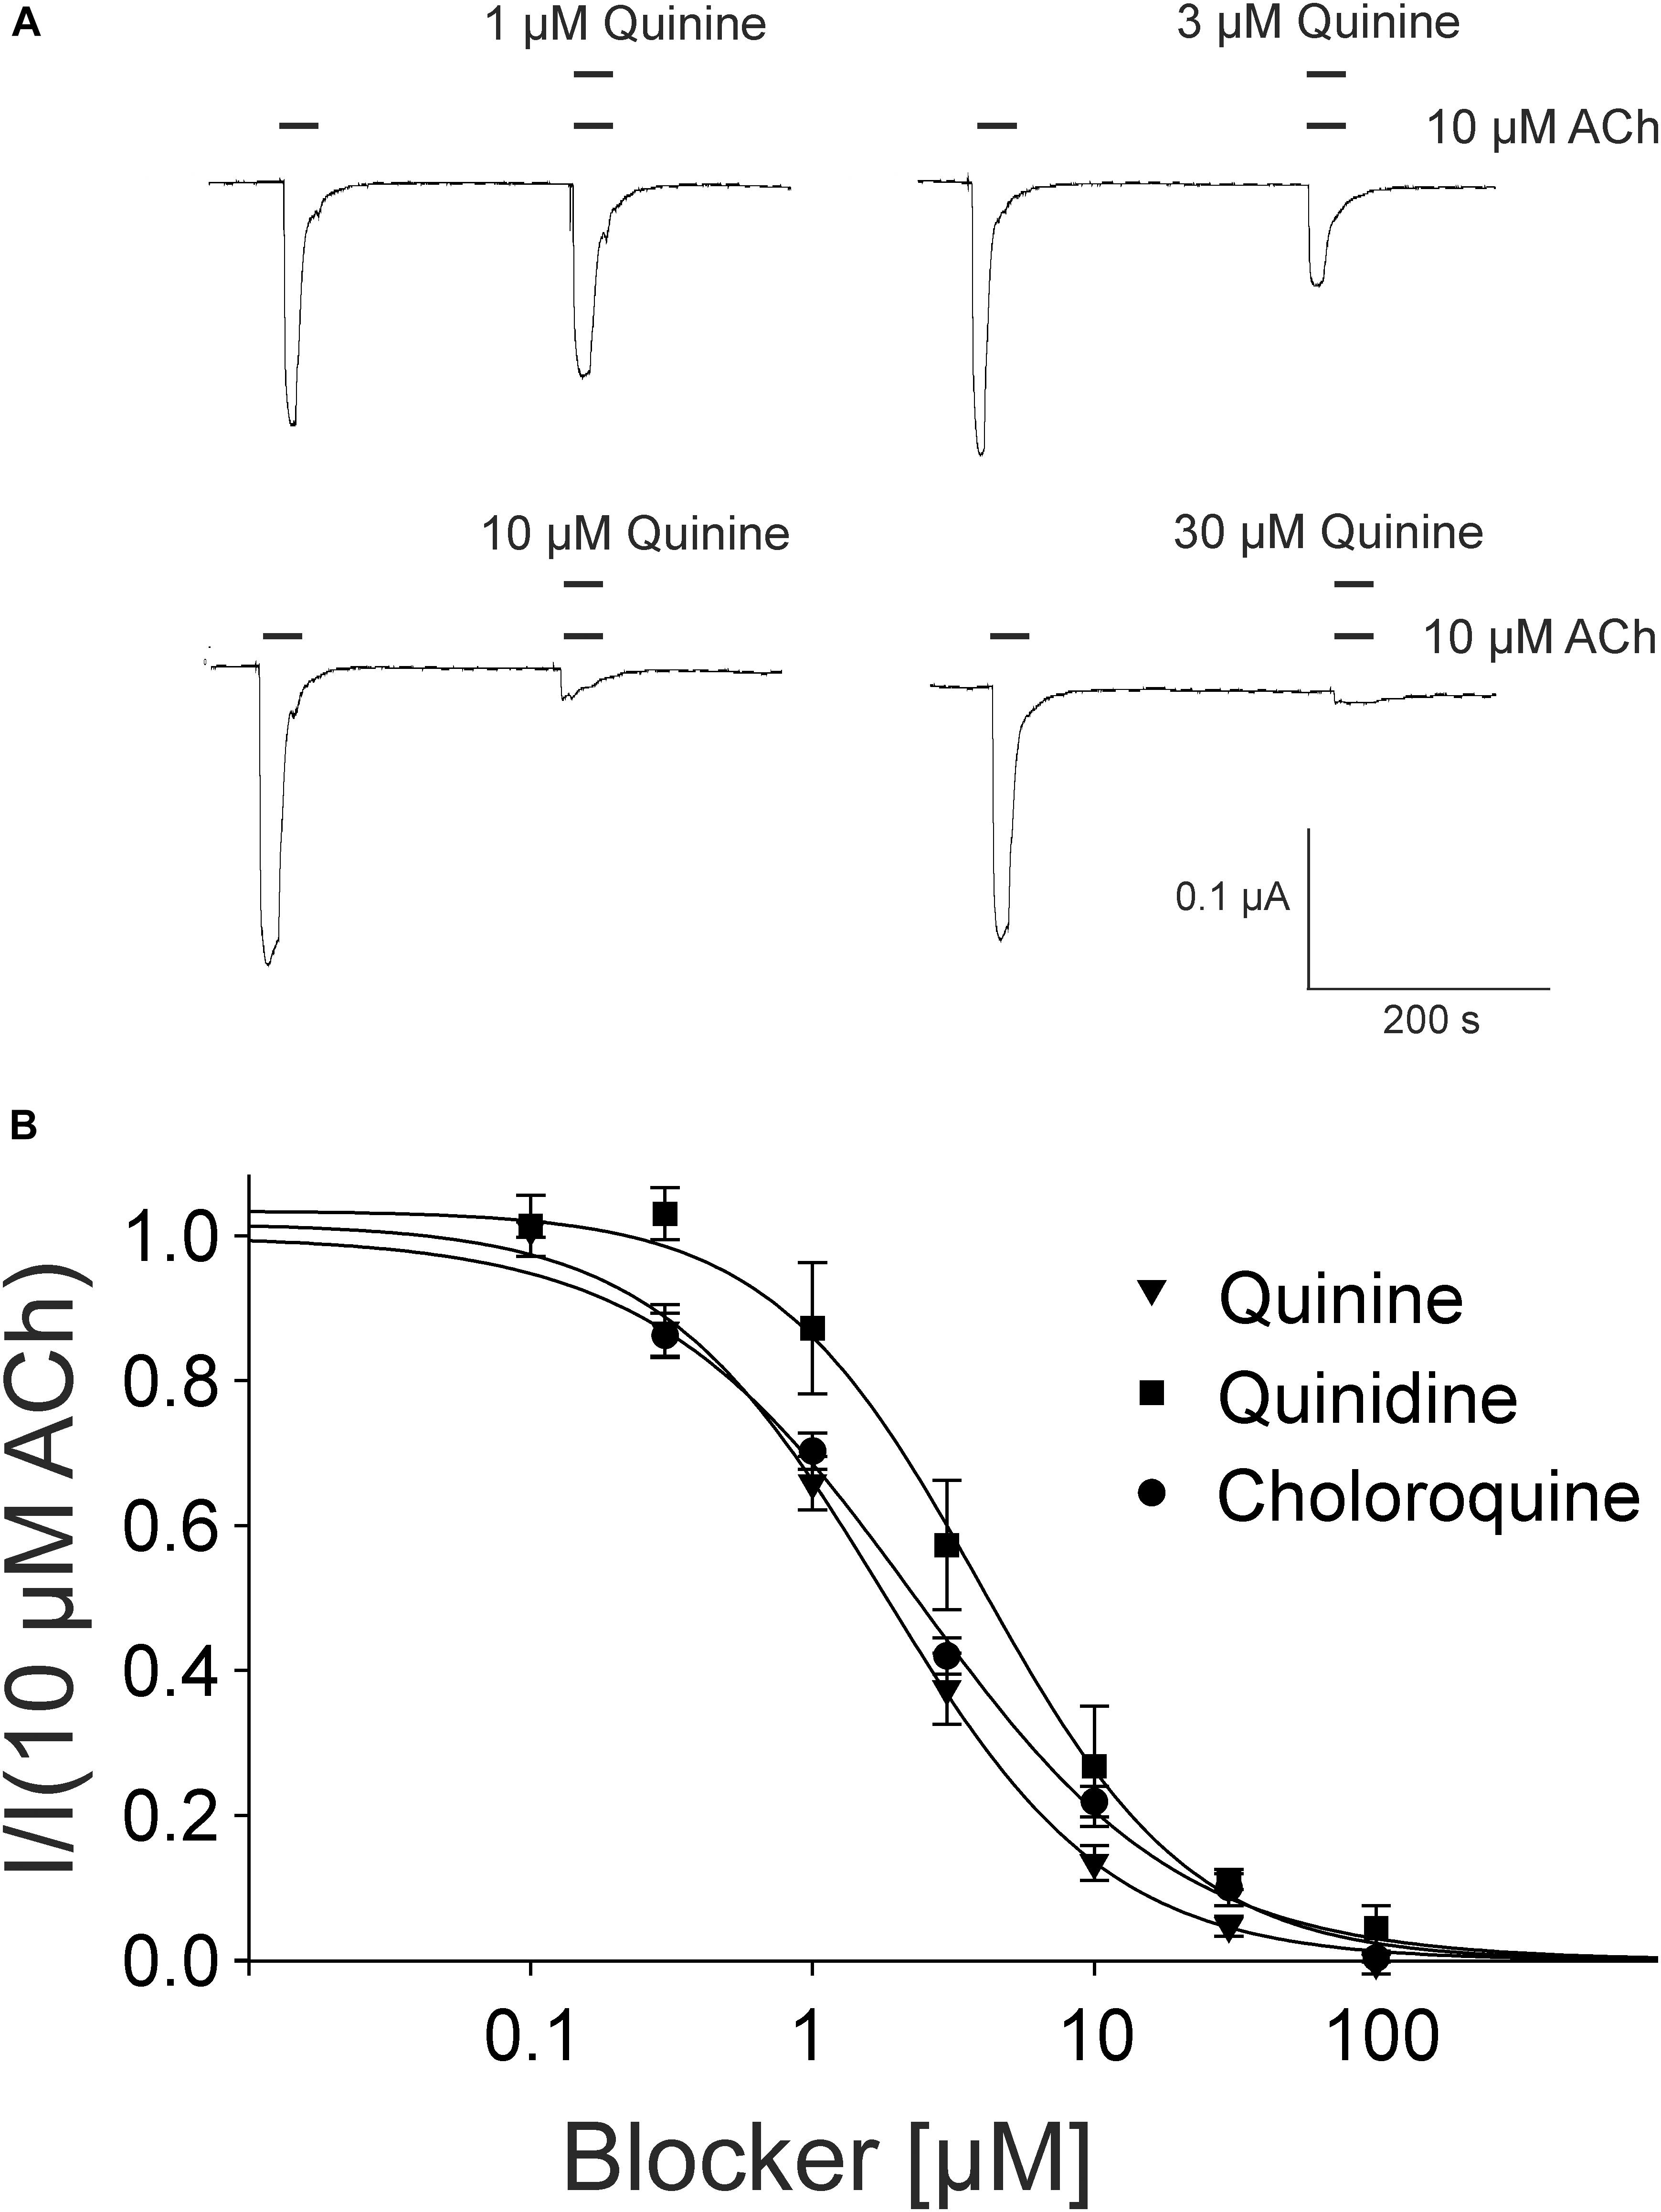 Frontiers | Effects of Quinine, Quinidine and Chloroquine on